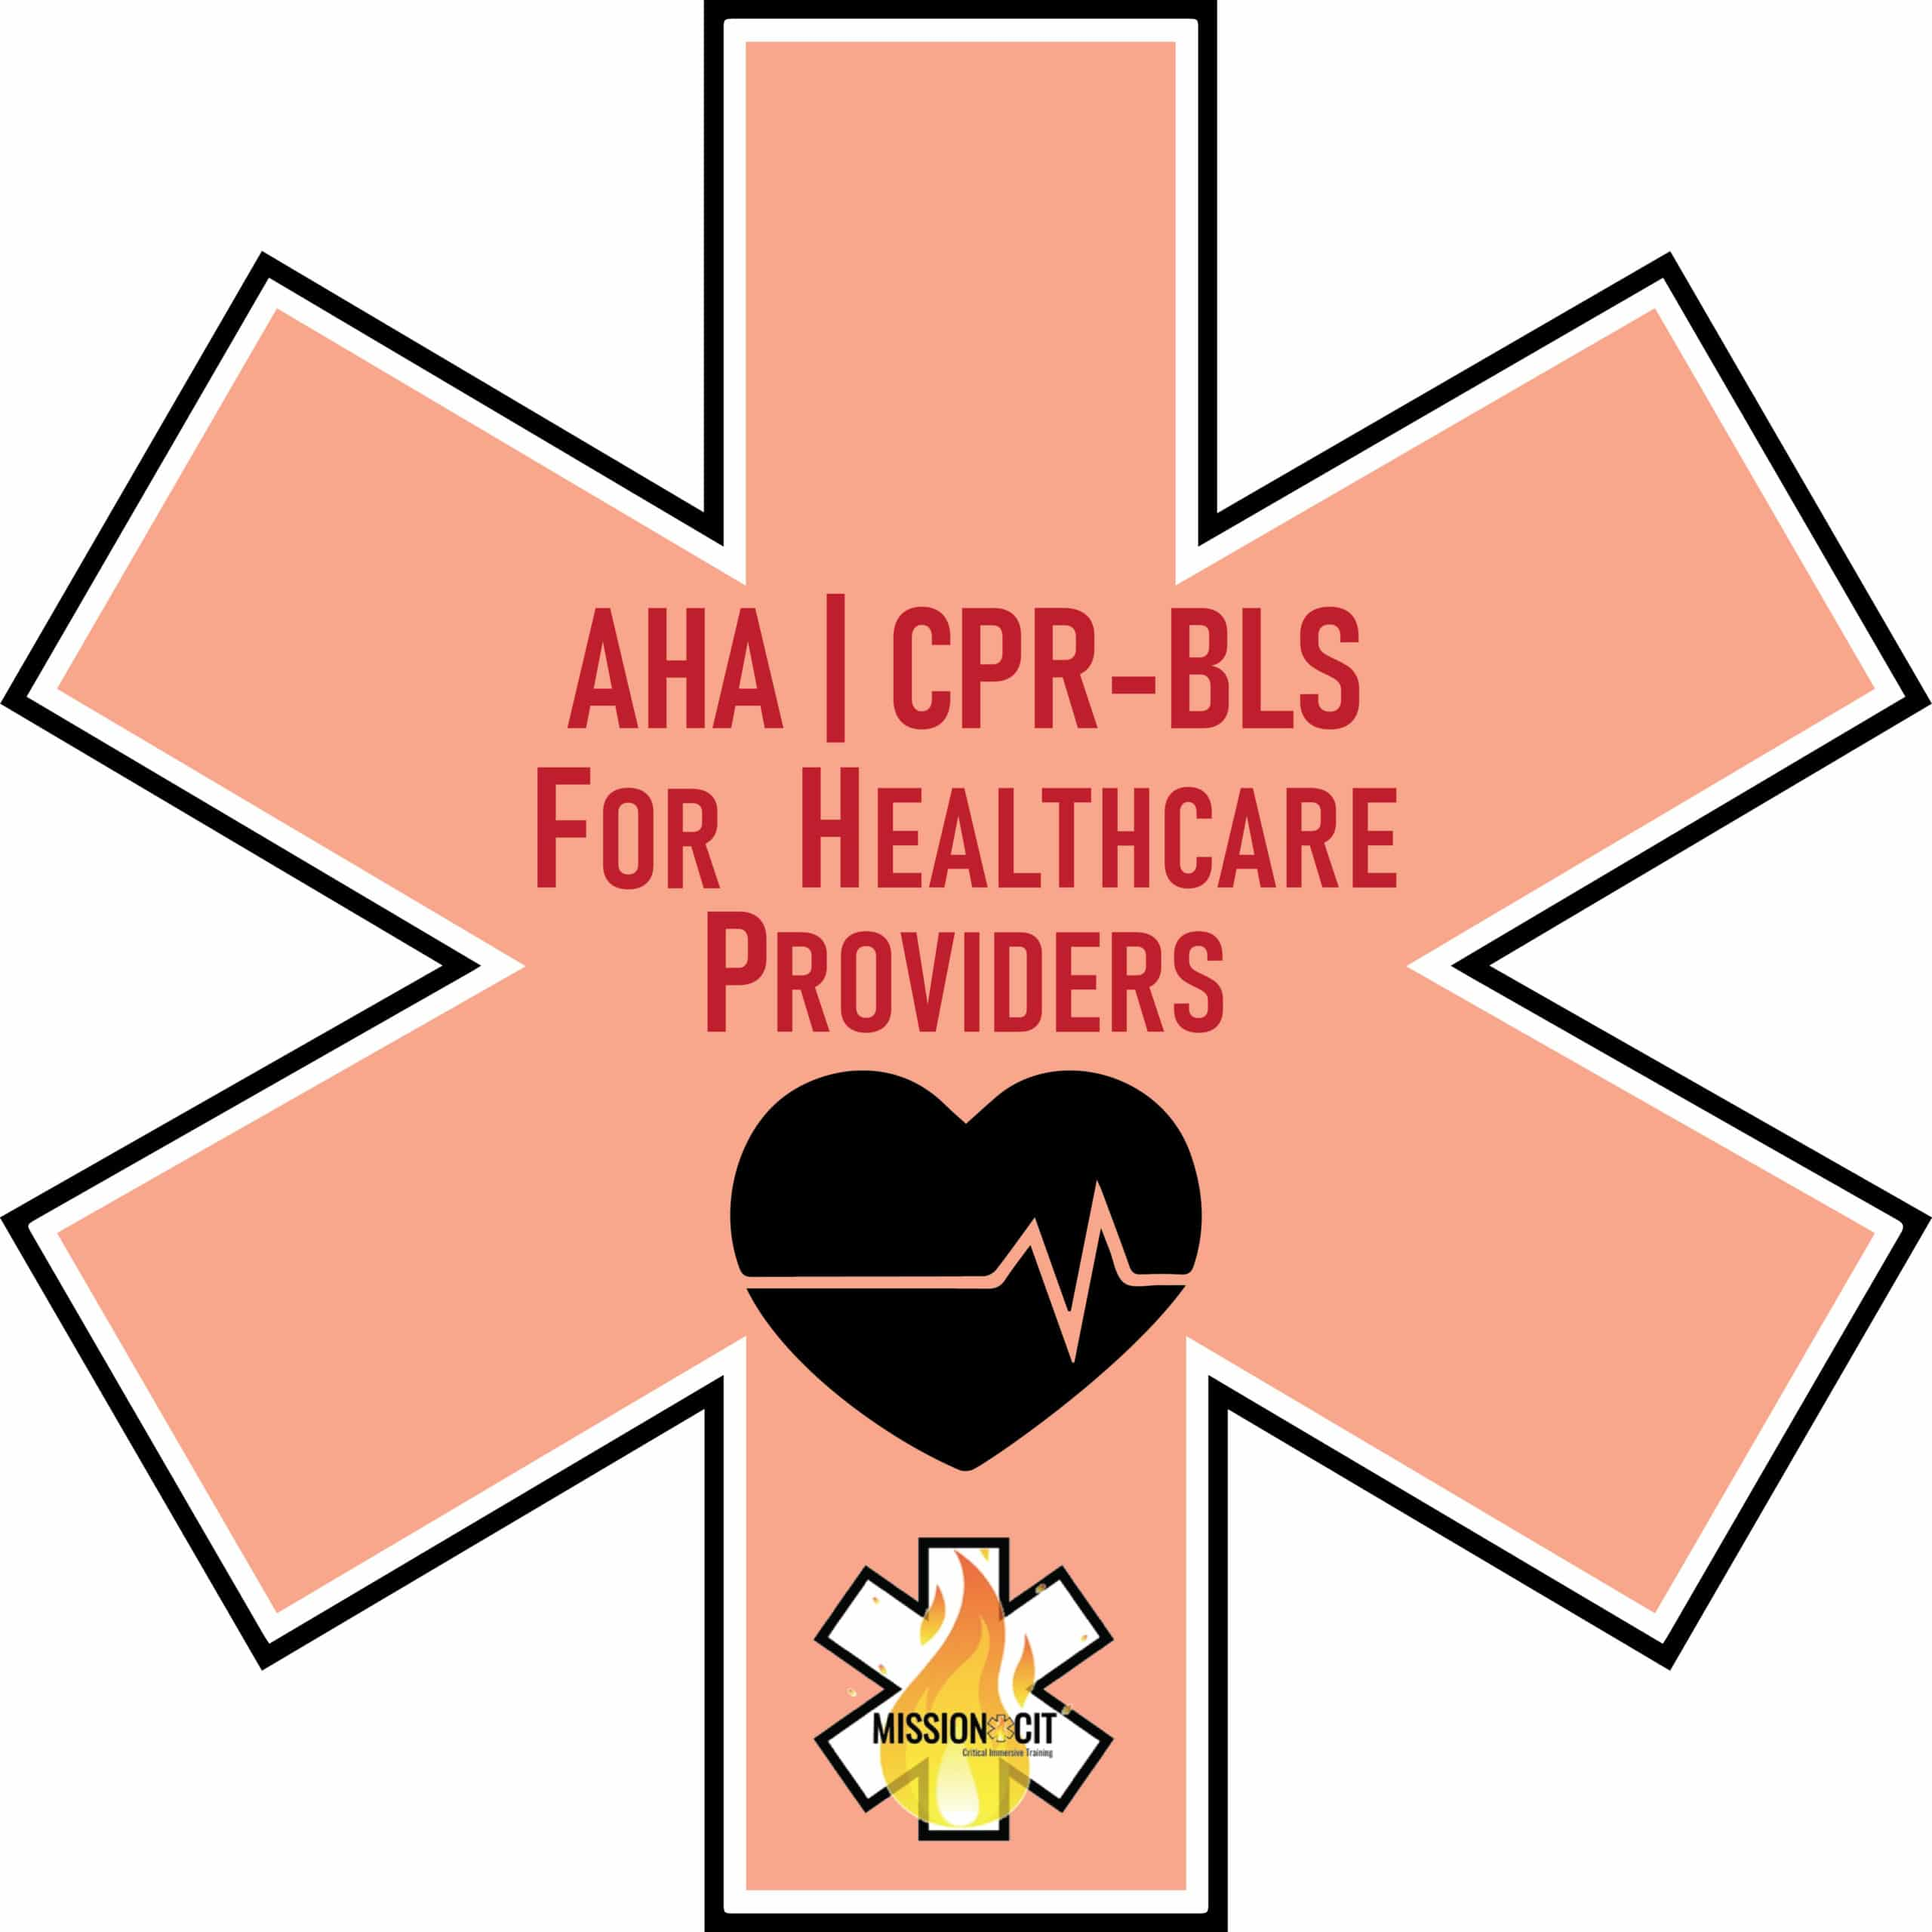 AHA | CPR-BLS for Healthcare Providers